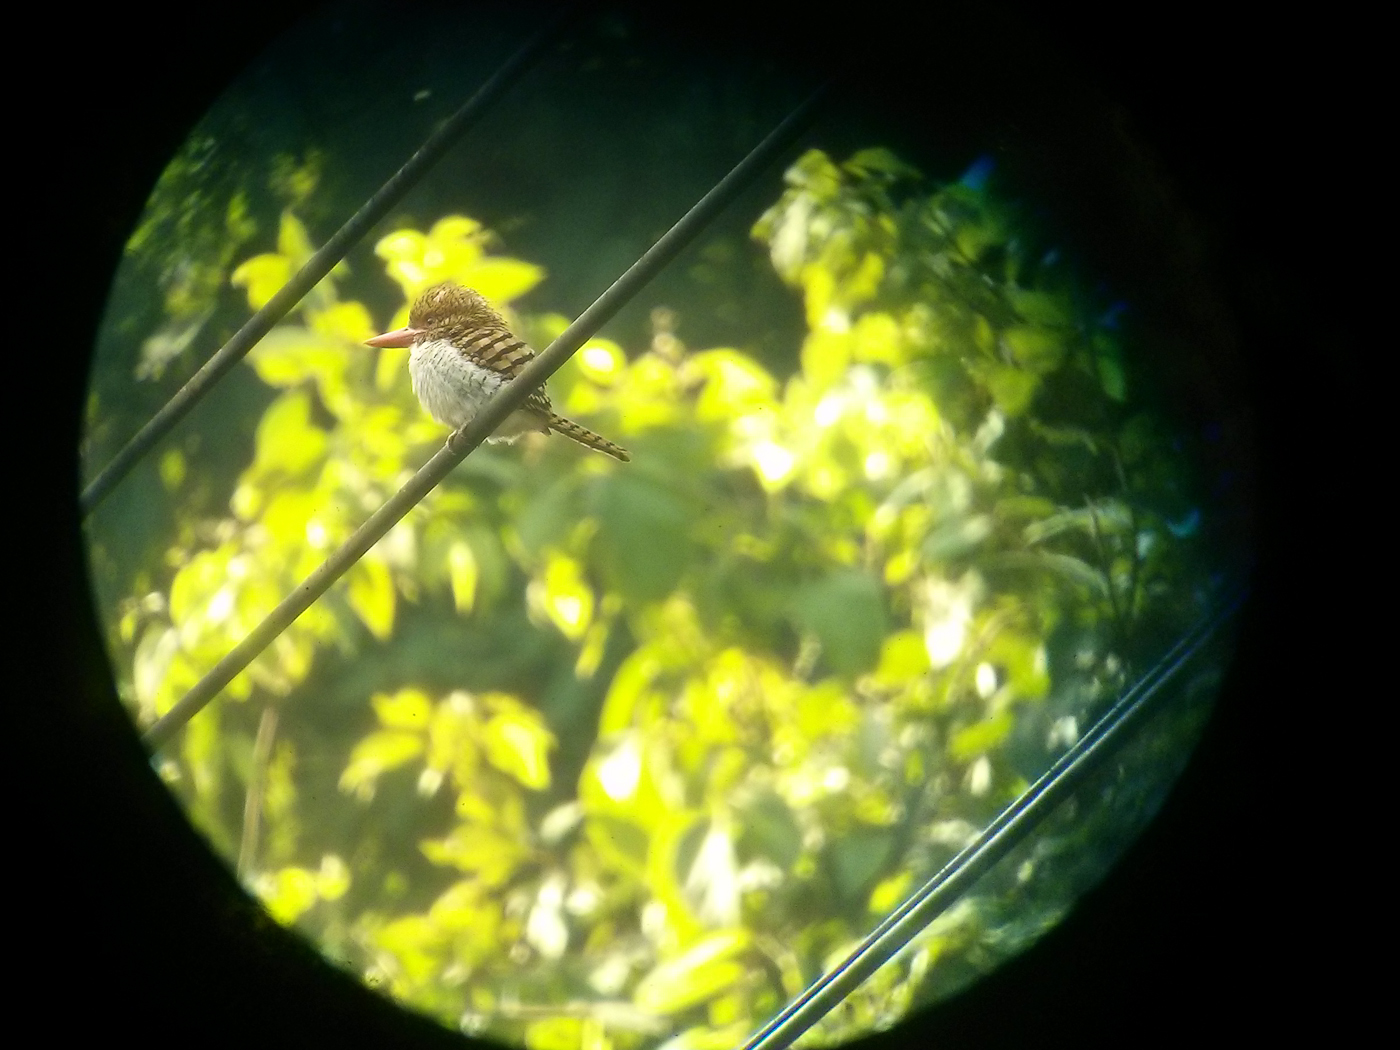 View through the scope at the Kingfisher